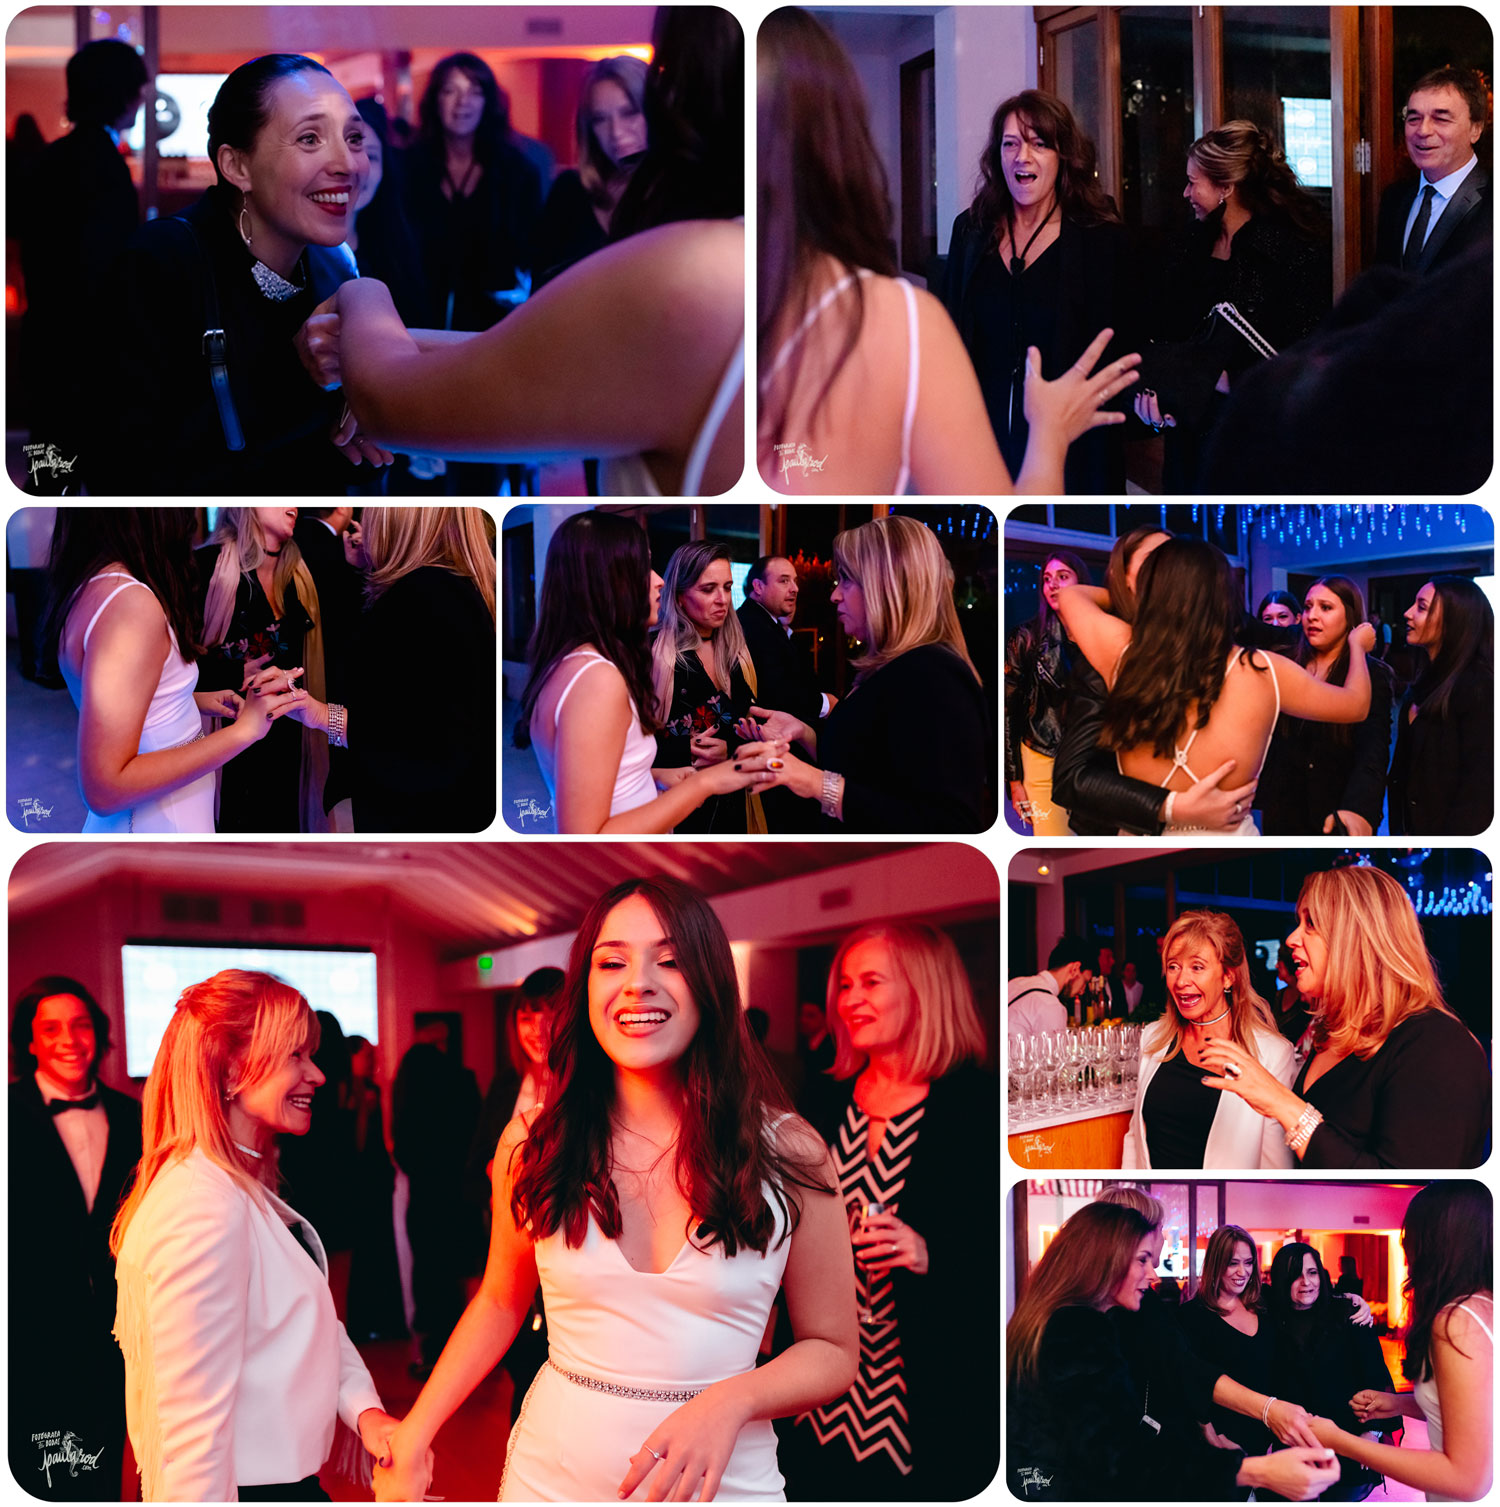 fotografia-documental-de-eventos-sociales-en-caba.jpg